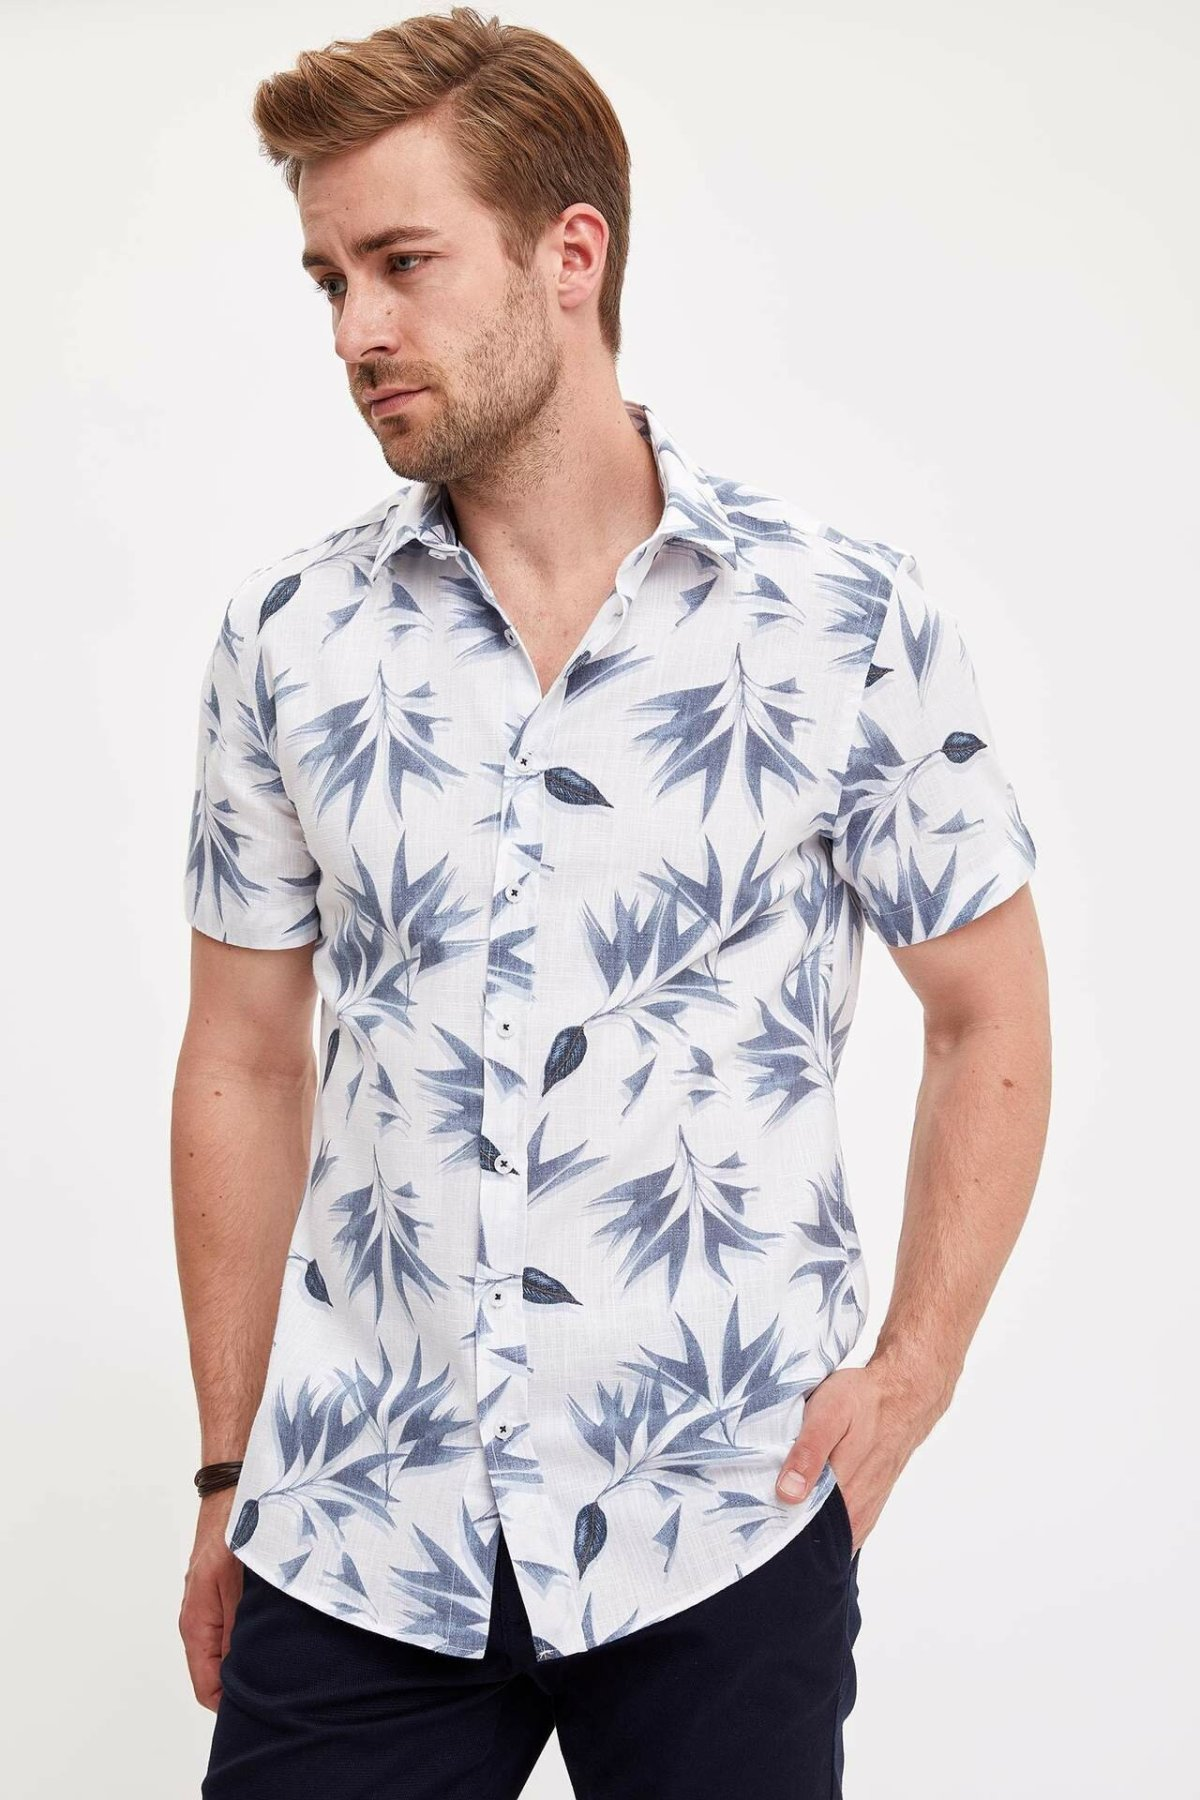 DeFacto Men Casual Print Lapel Collar Shirts Short Sleeve Simple Shirts Men Shirt Tops- L4580AZ19HS